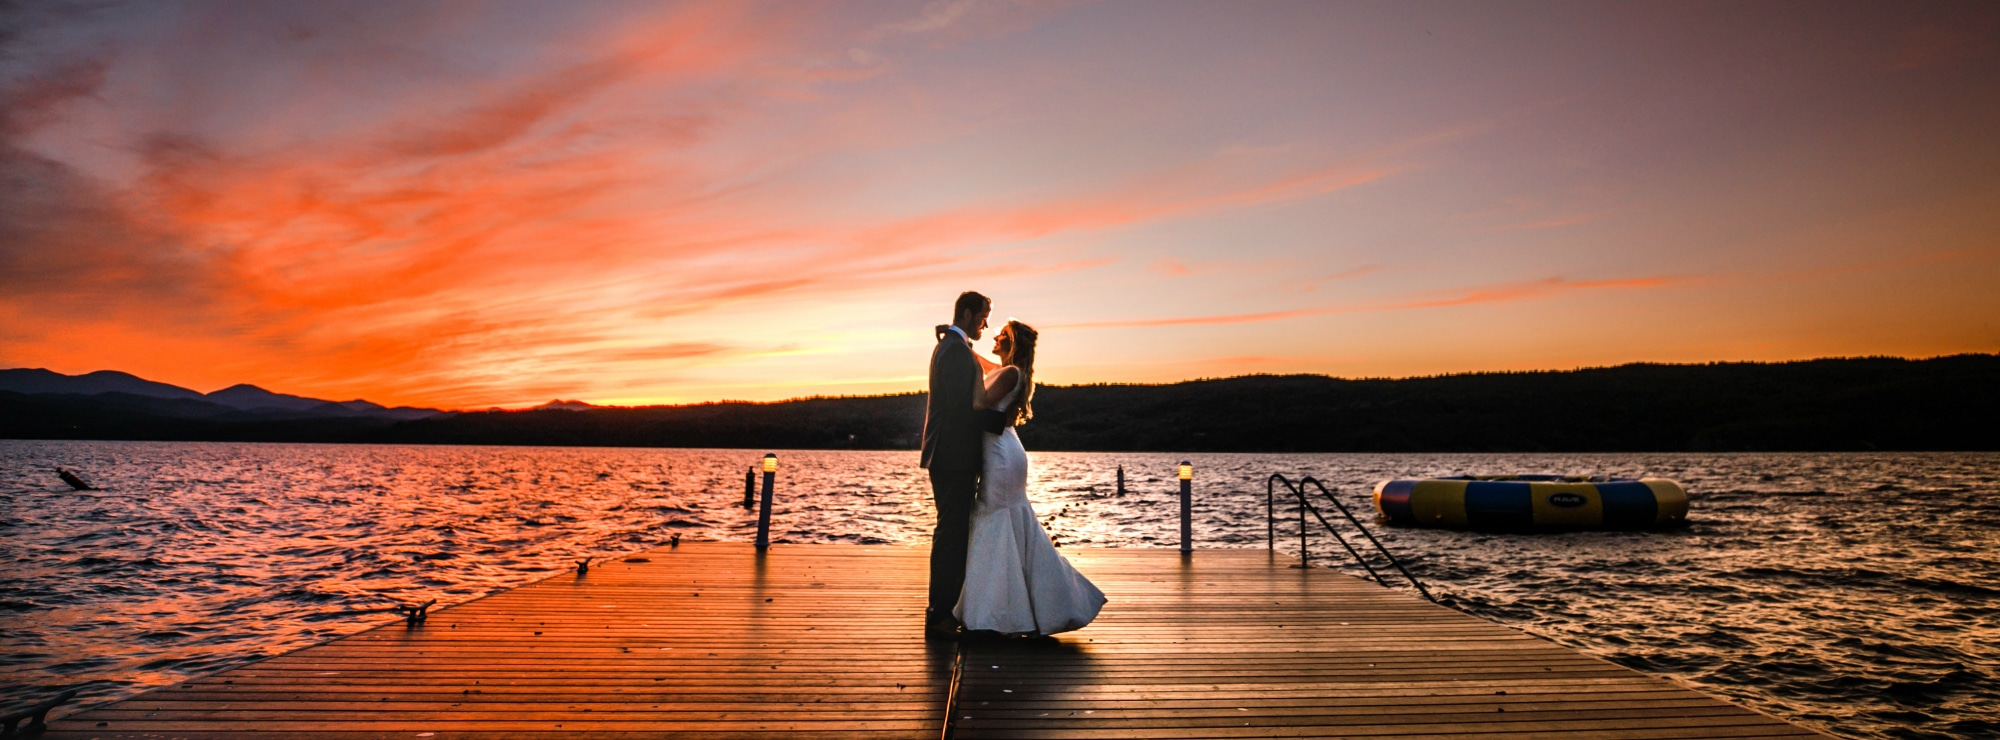 Wedding Sunset Slider